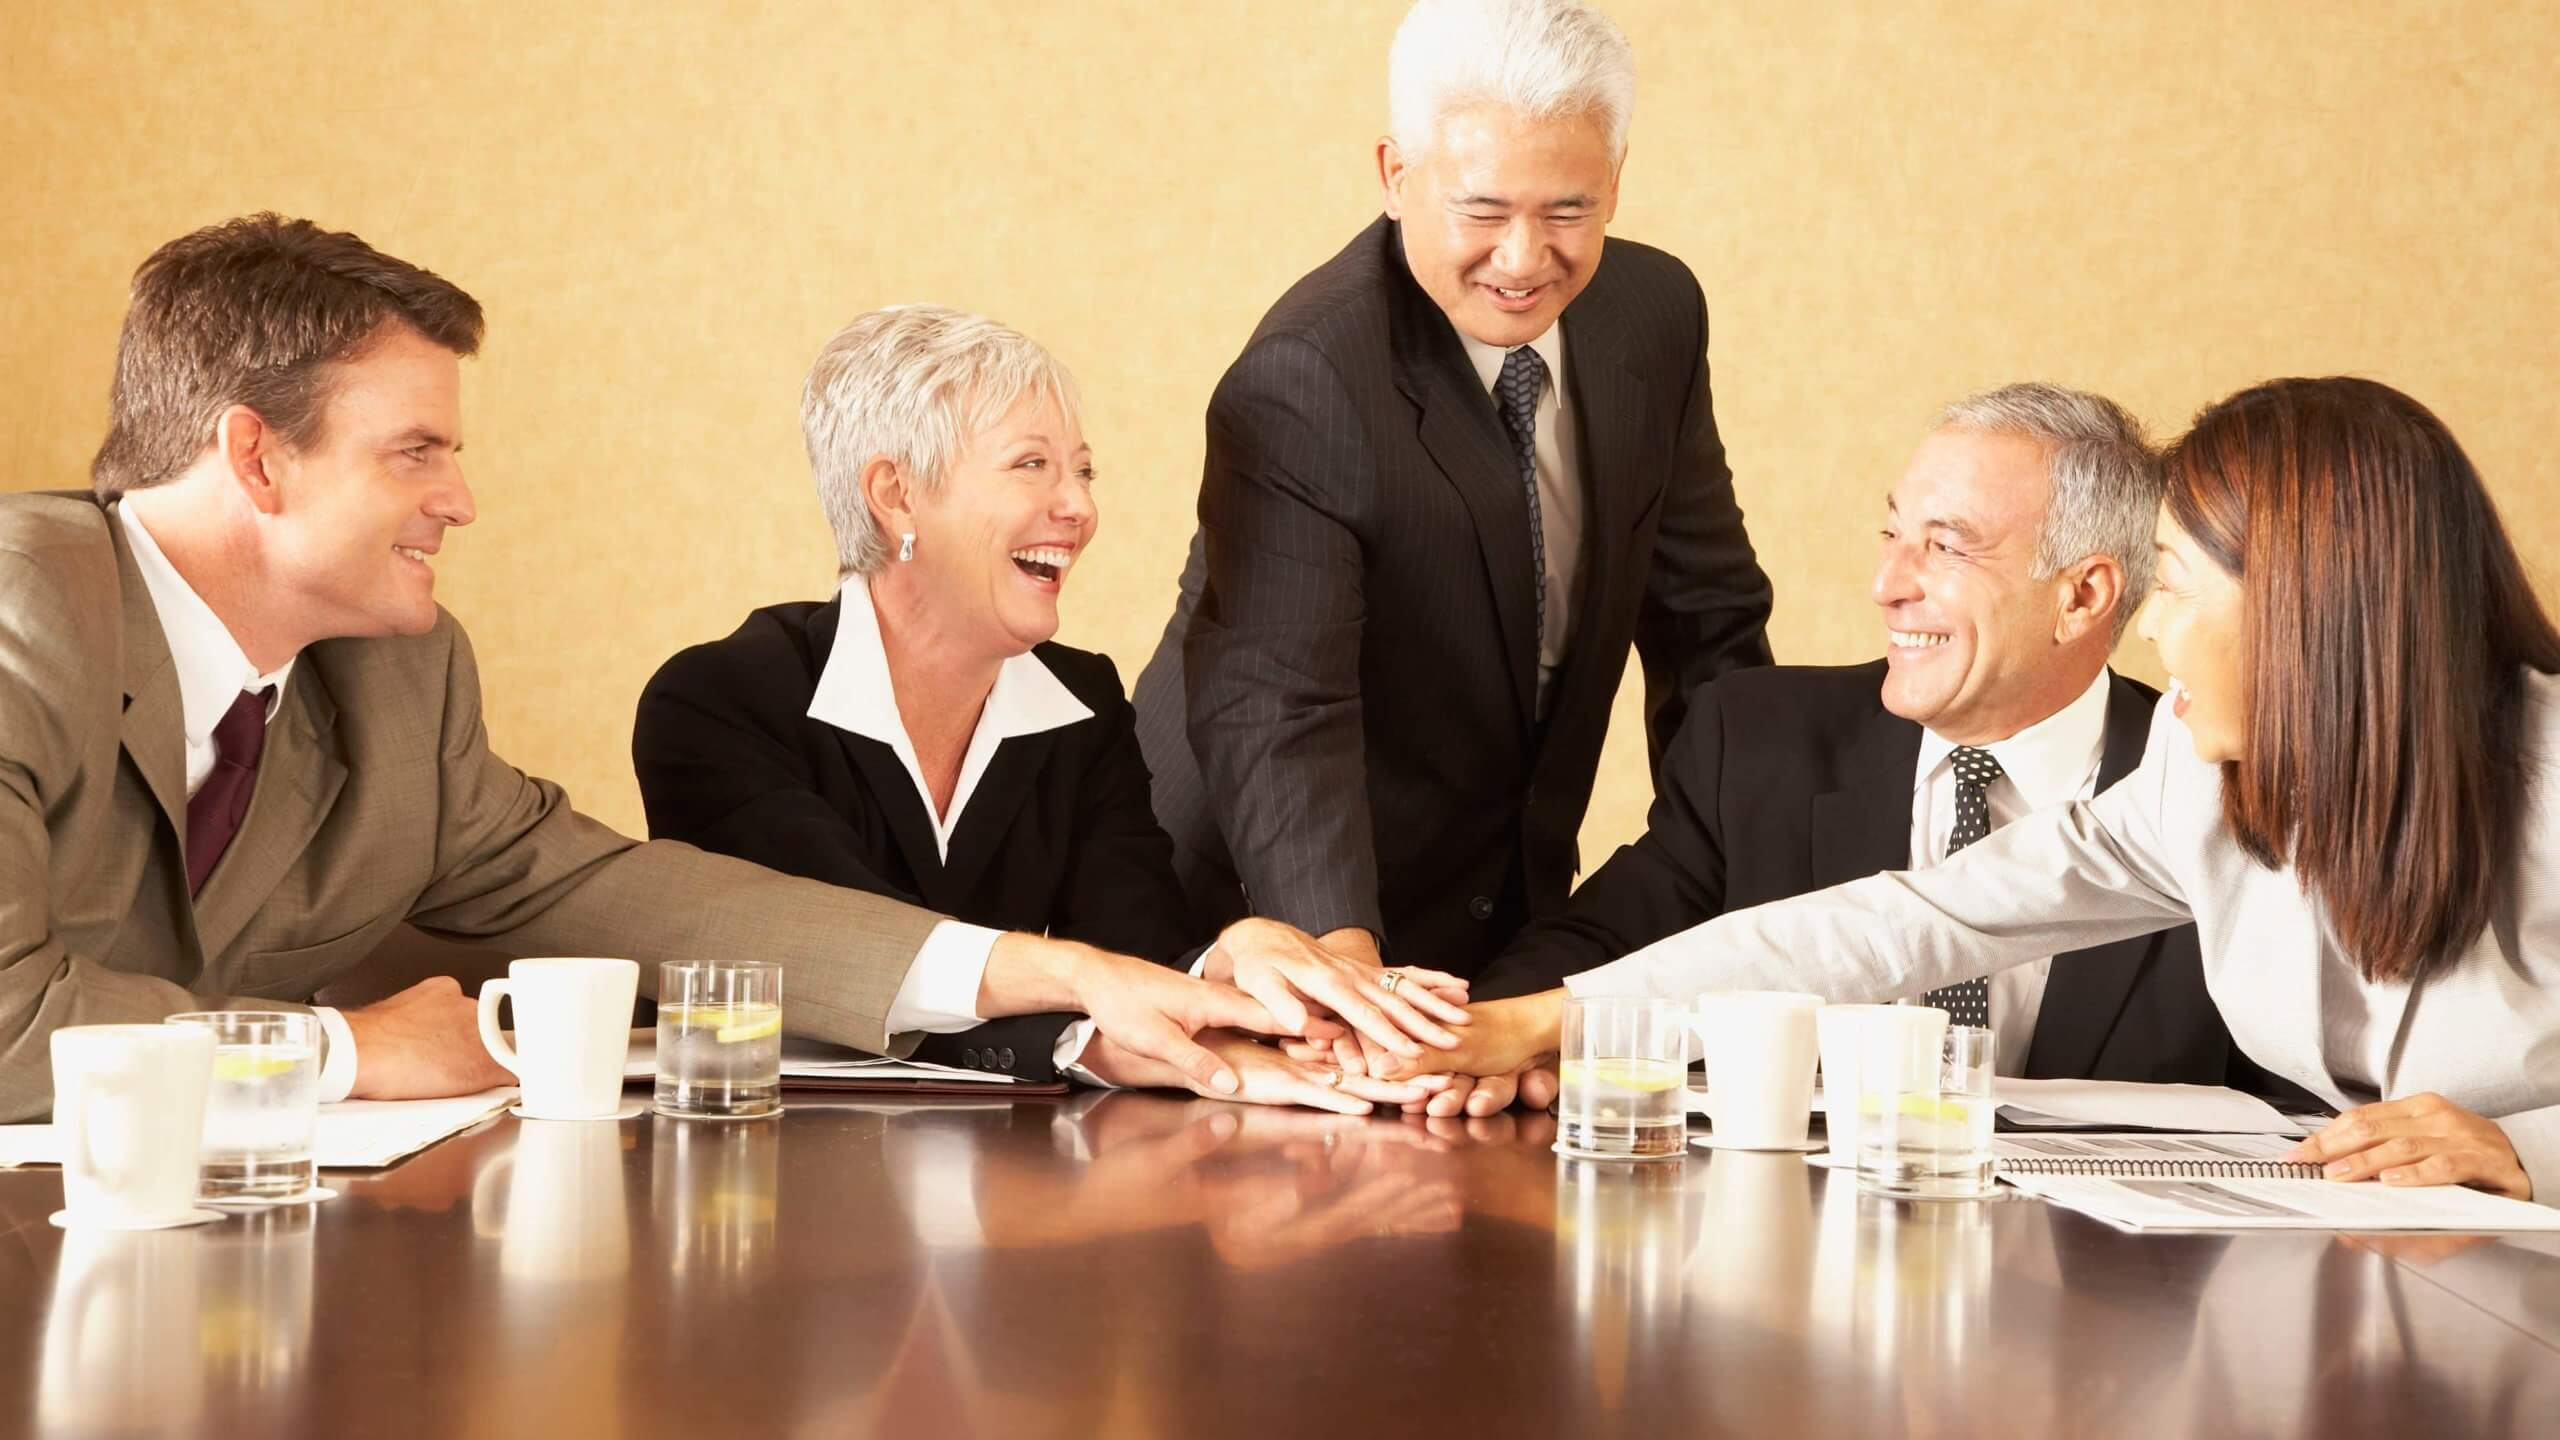 LIMITED COMPANY WITH A BOARD OF DIRECTORS